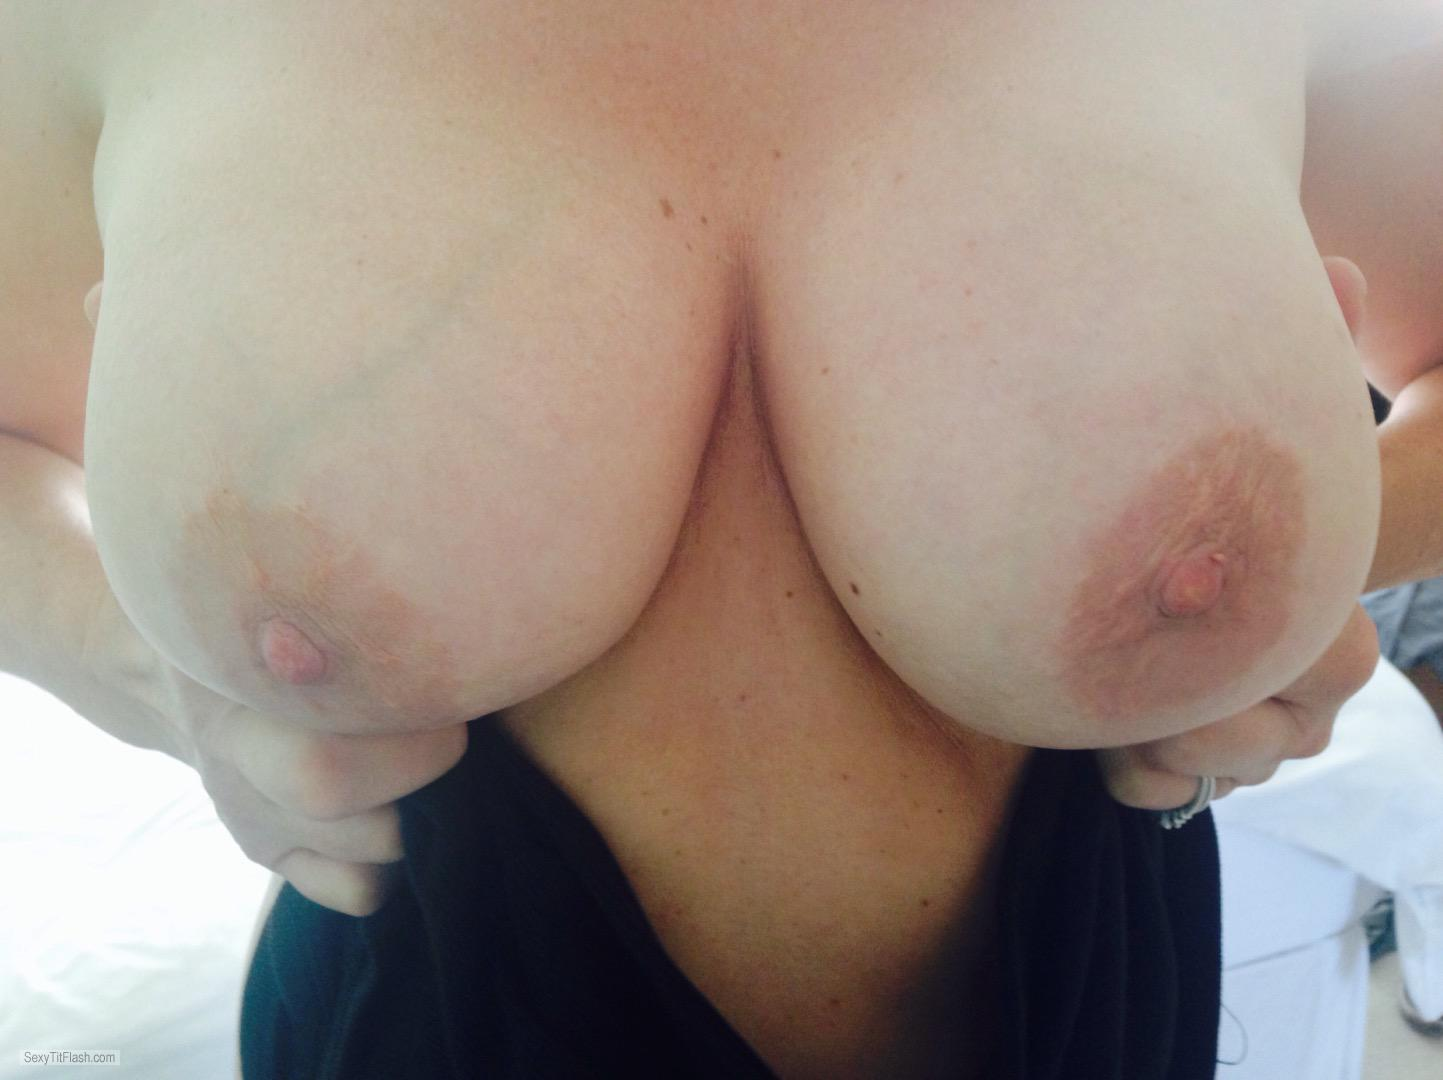 Tit Flash: My Big Tits - J from United Kingdom